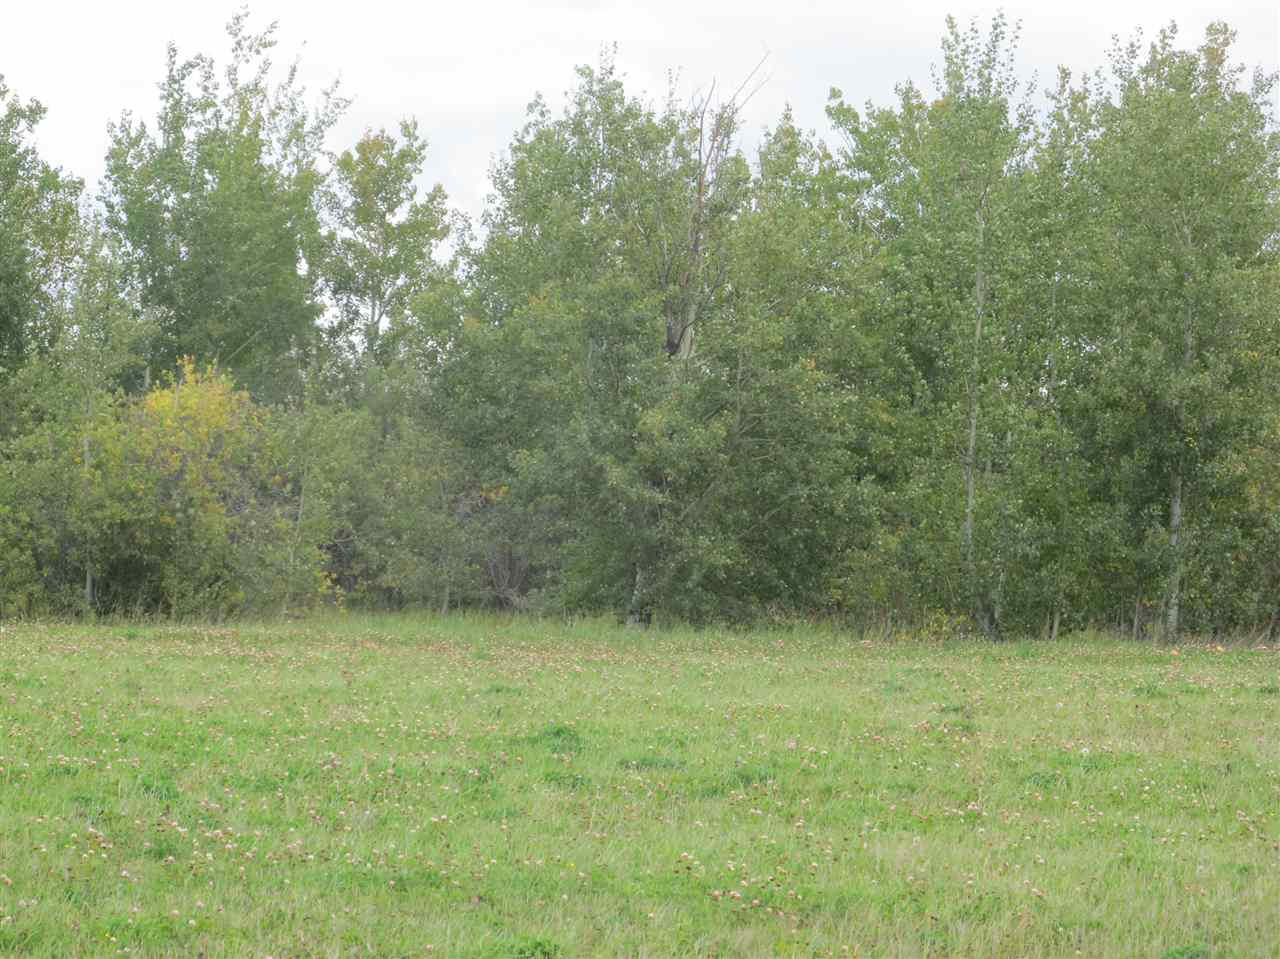 Photo 5: 59512 RR 255: Rural Westlock County Rural Land/Vacant Lot for sale : MLS(r) # E4037975